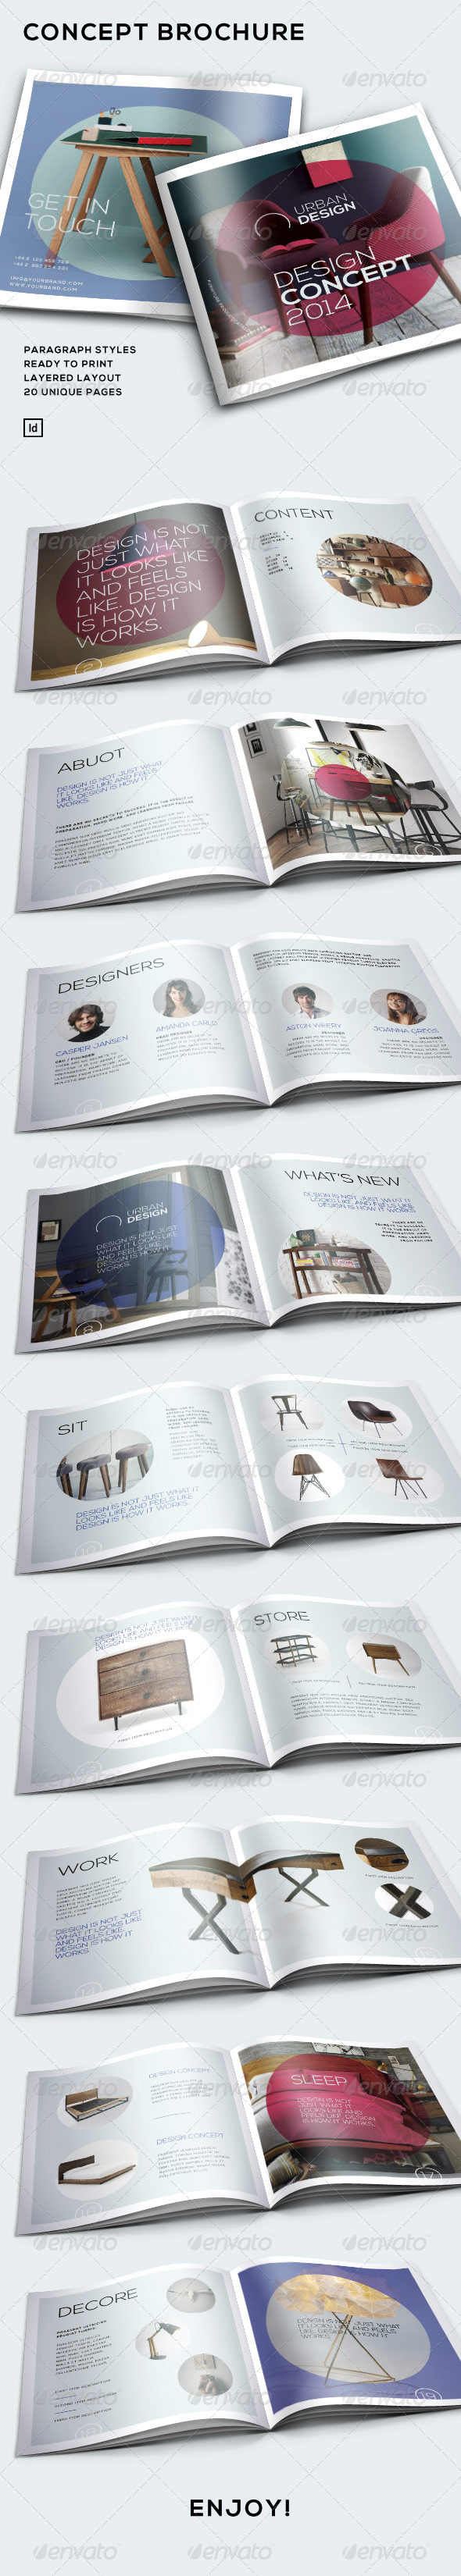 GraphicRiver Concept Brochure 7019996